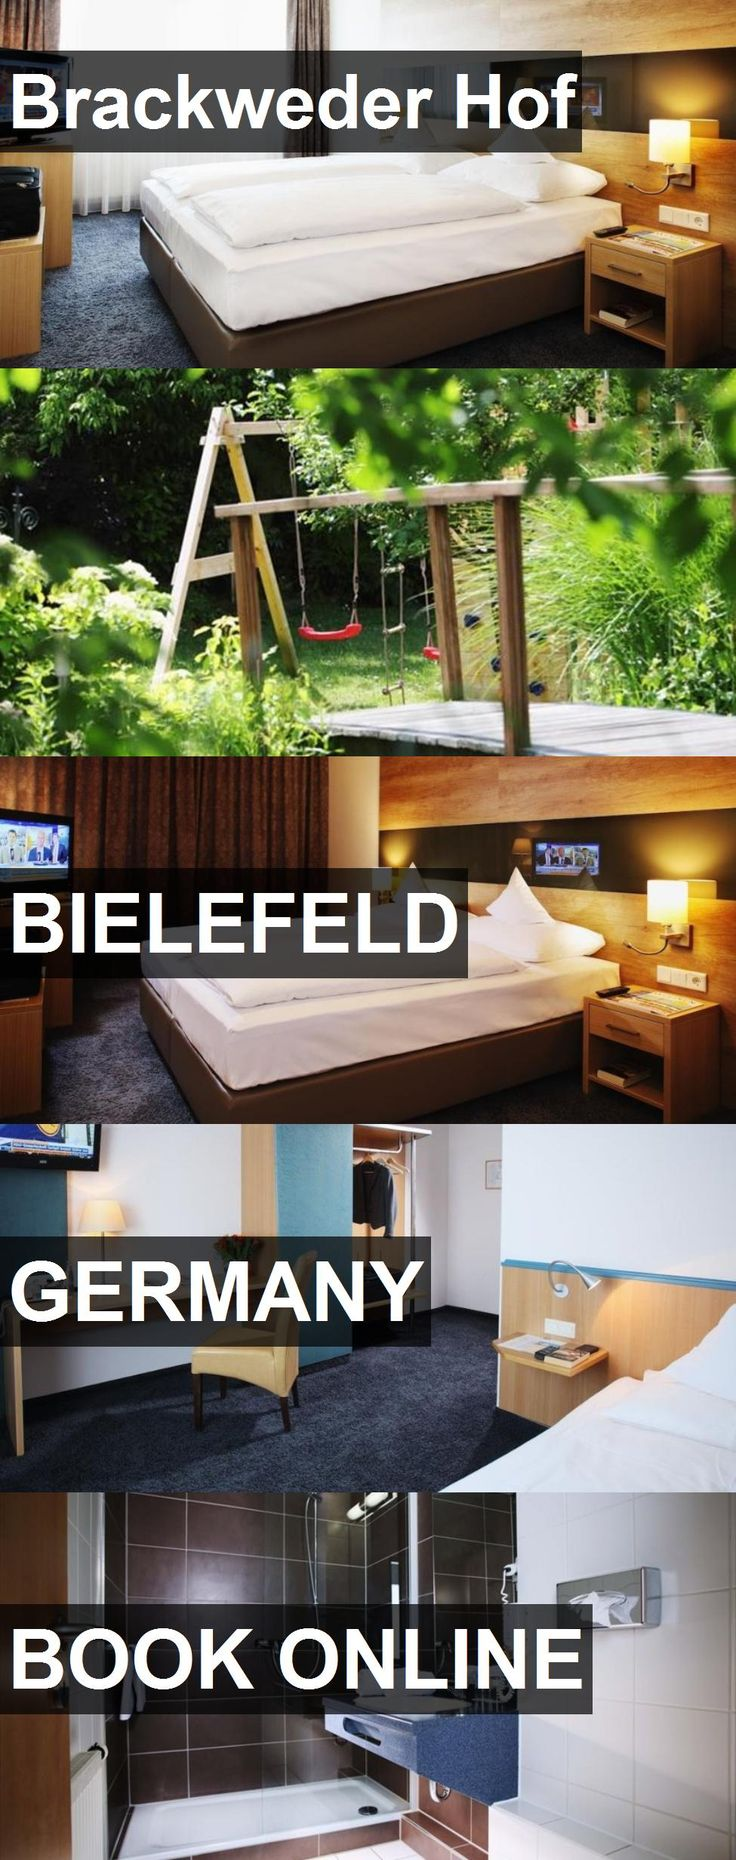 Hotel Brackweder Hof in Bielefeld, Germany. For more information, photos, reviews and best prices please follow the link. #Germany #Bielefeld #travel #vacation #hotel